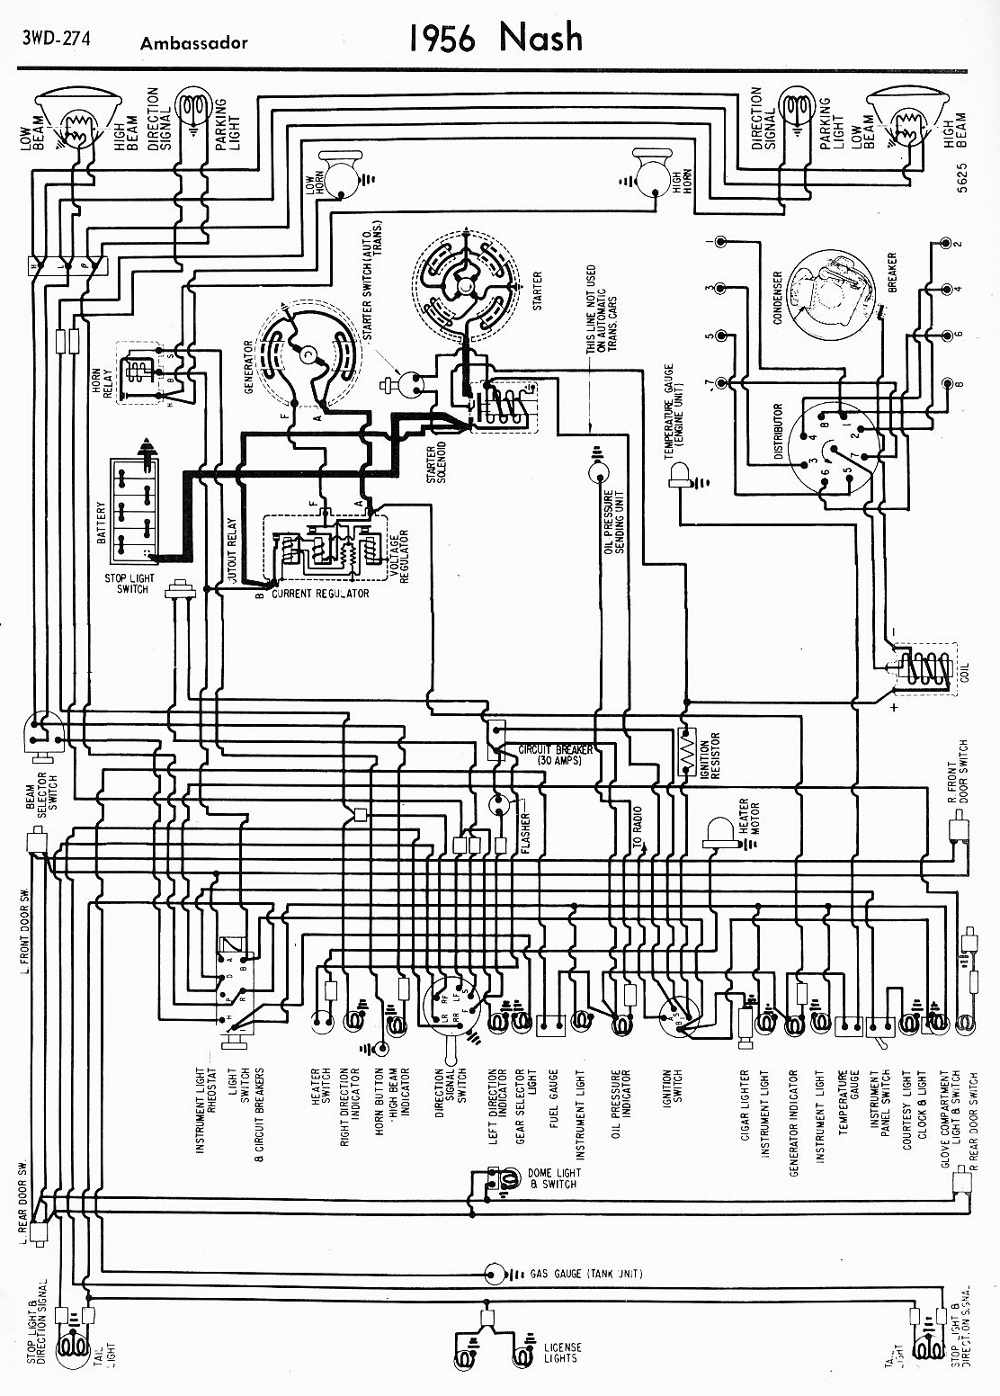 1951 Olds Wiring Diagram Wire Data Schema Oldsmobile Diagrams 1941 Electrical Rh Cytrus Co Automotive 3 Way Switch